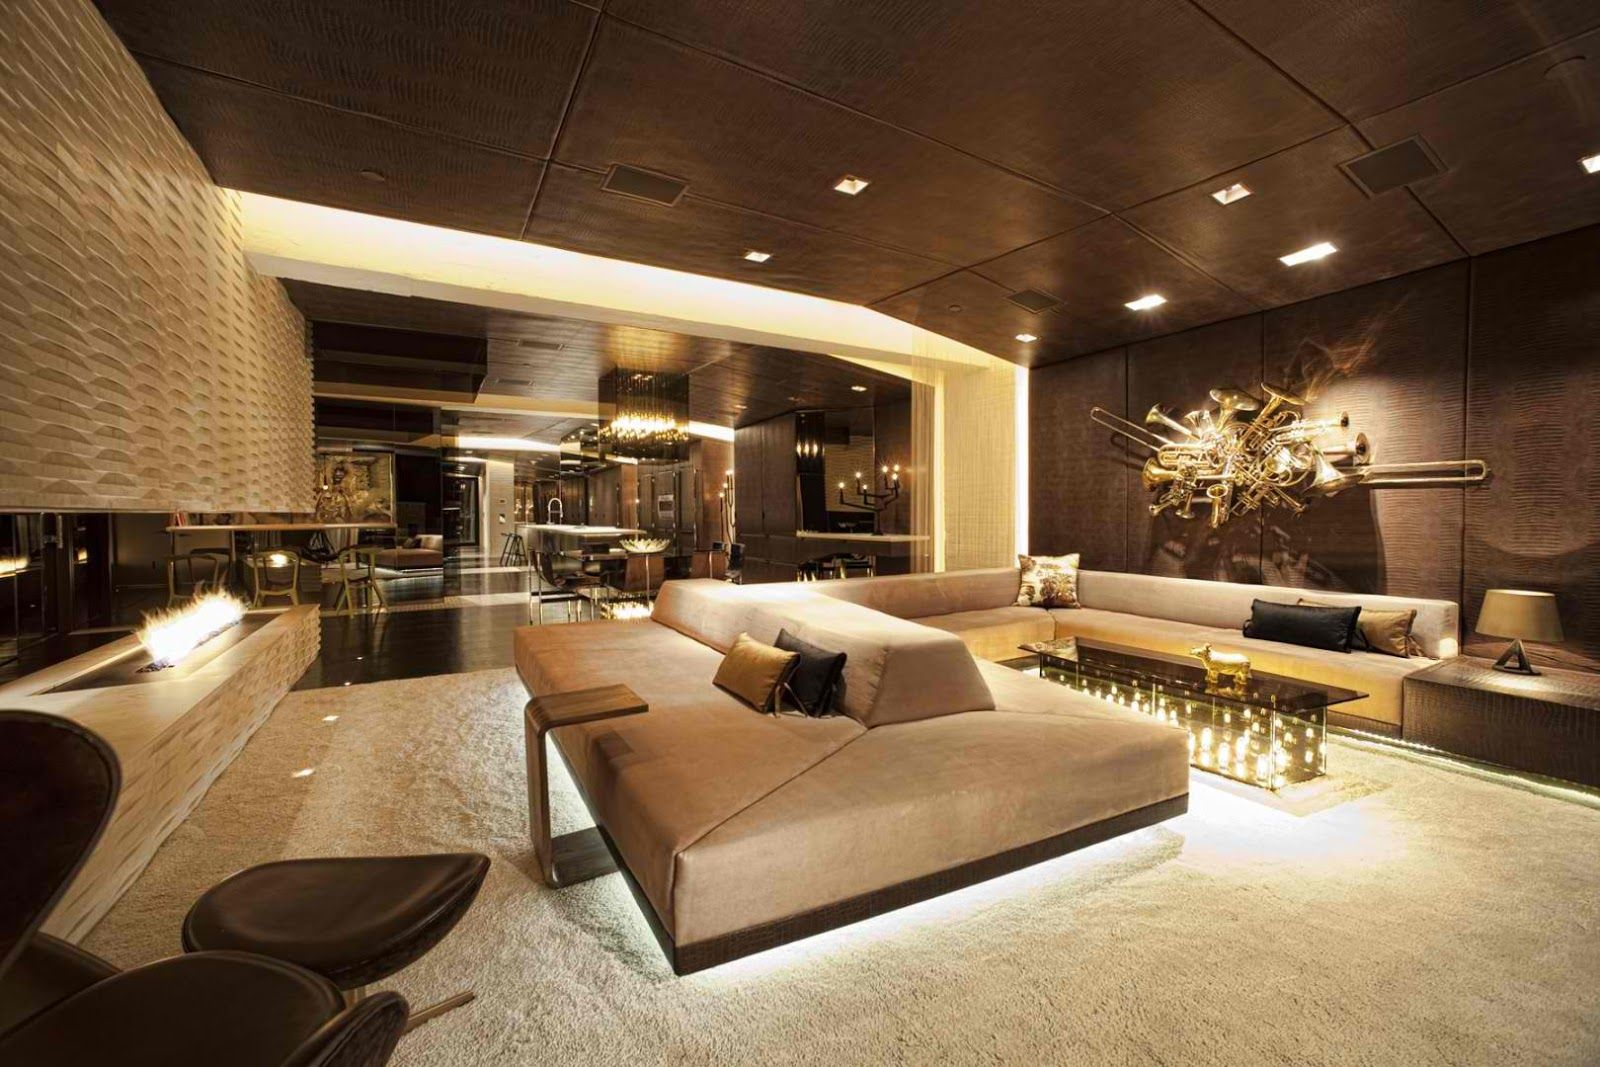 Modern Luxury Homes Interior Design Collection | Home Design Ideas